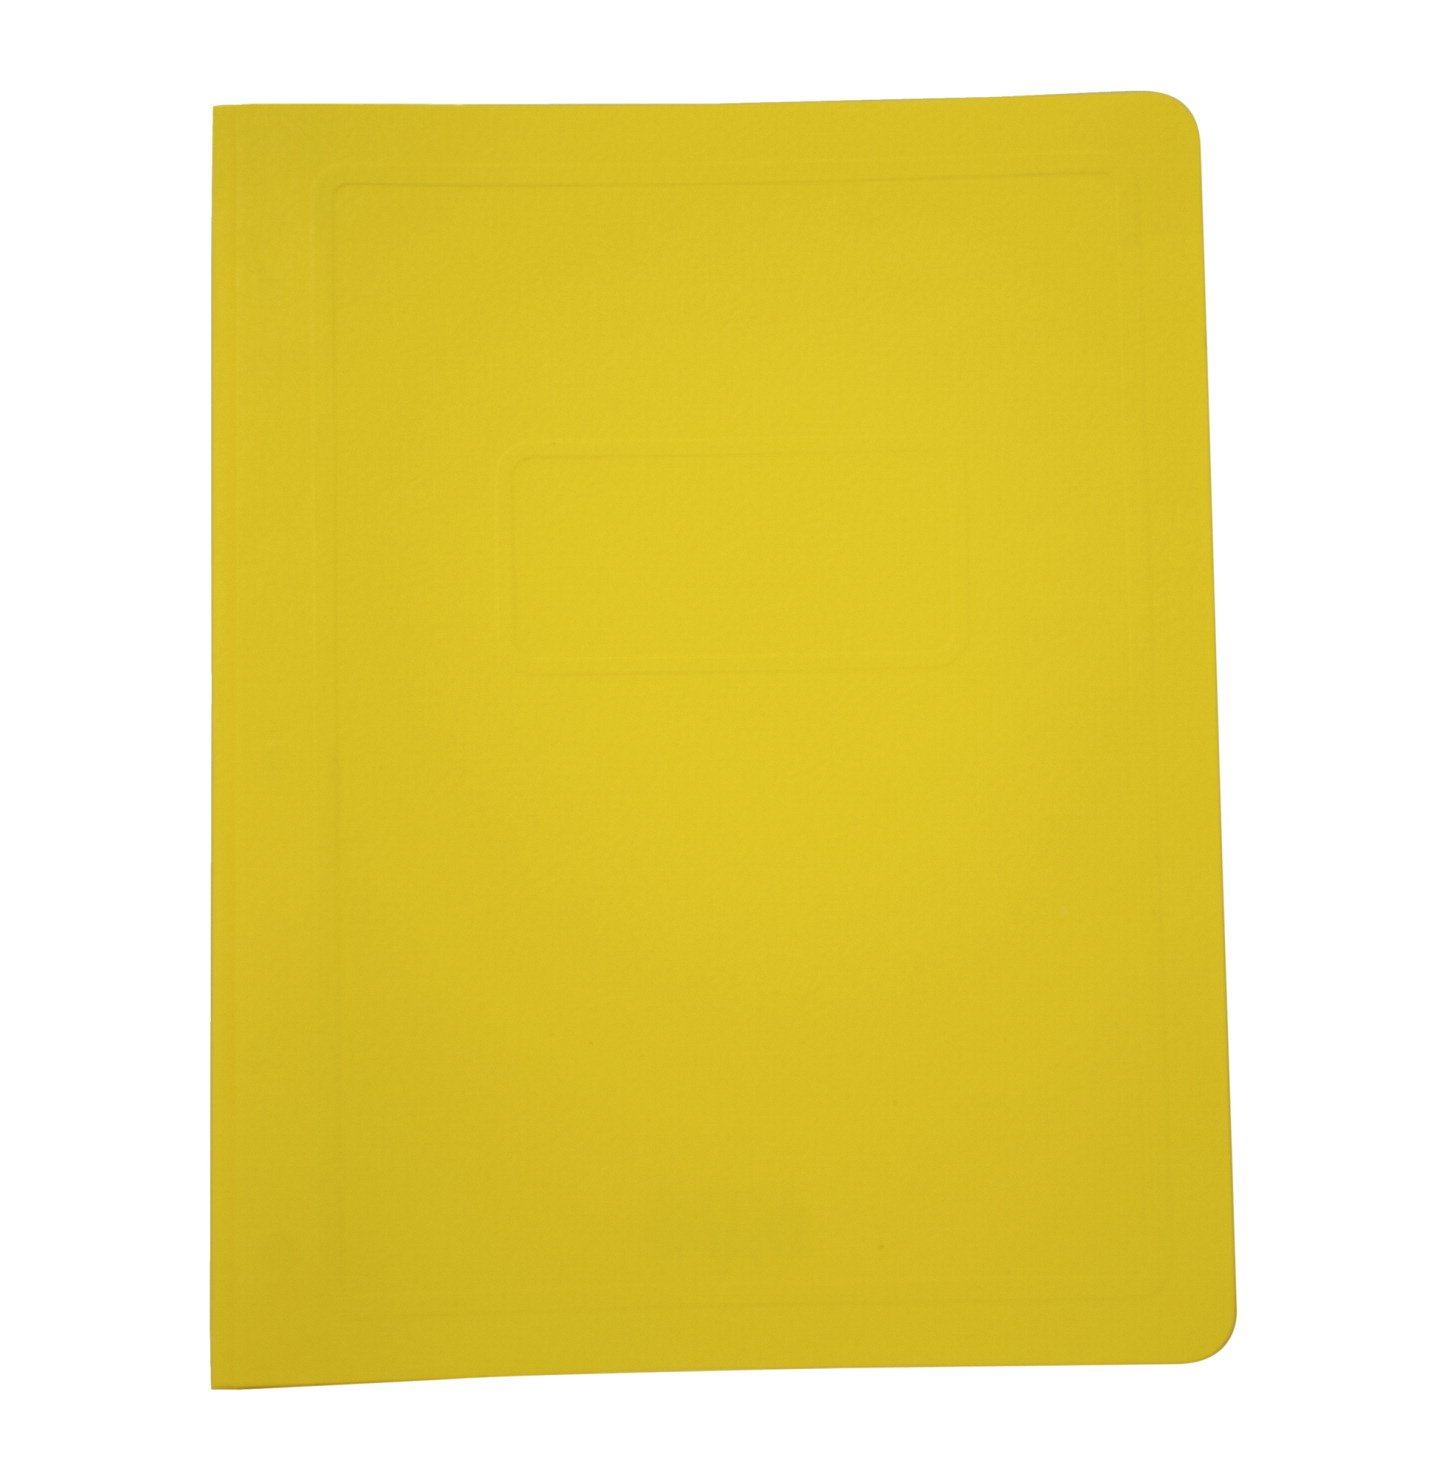 School Smart Report Cover with 3 Hole Fastener Insert - 8 1/2 x 11 inch - Pack of 25 - Yellow